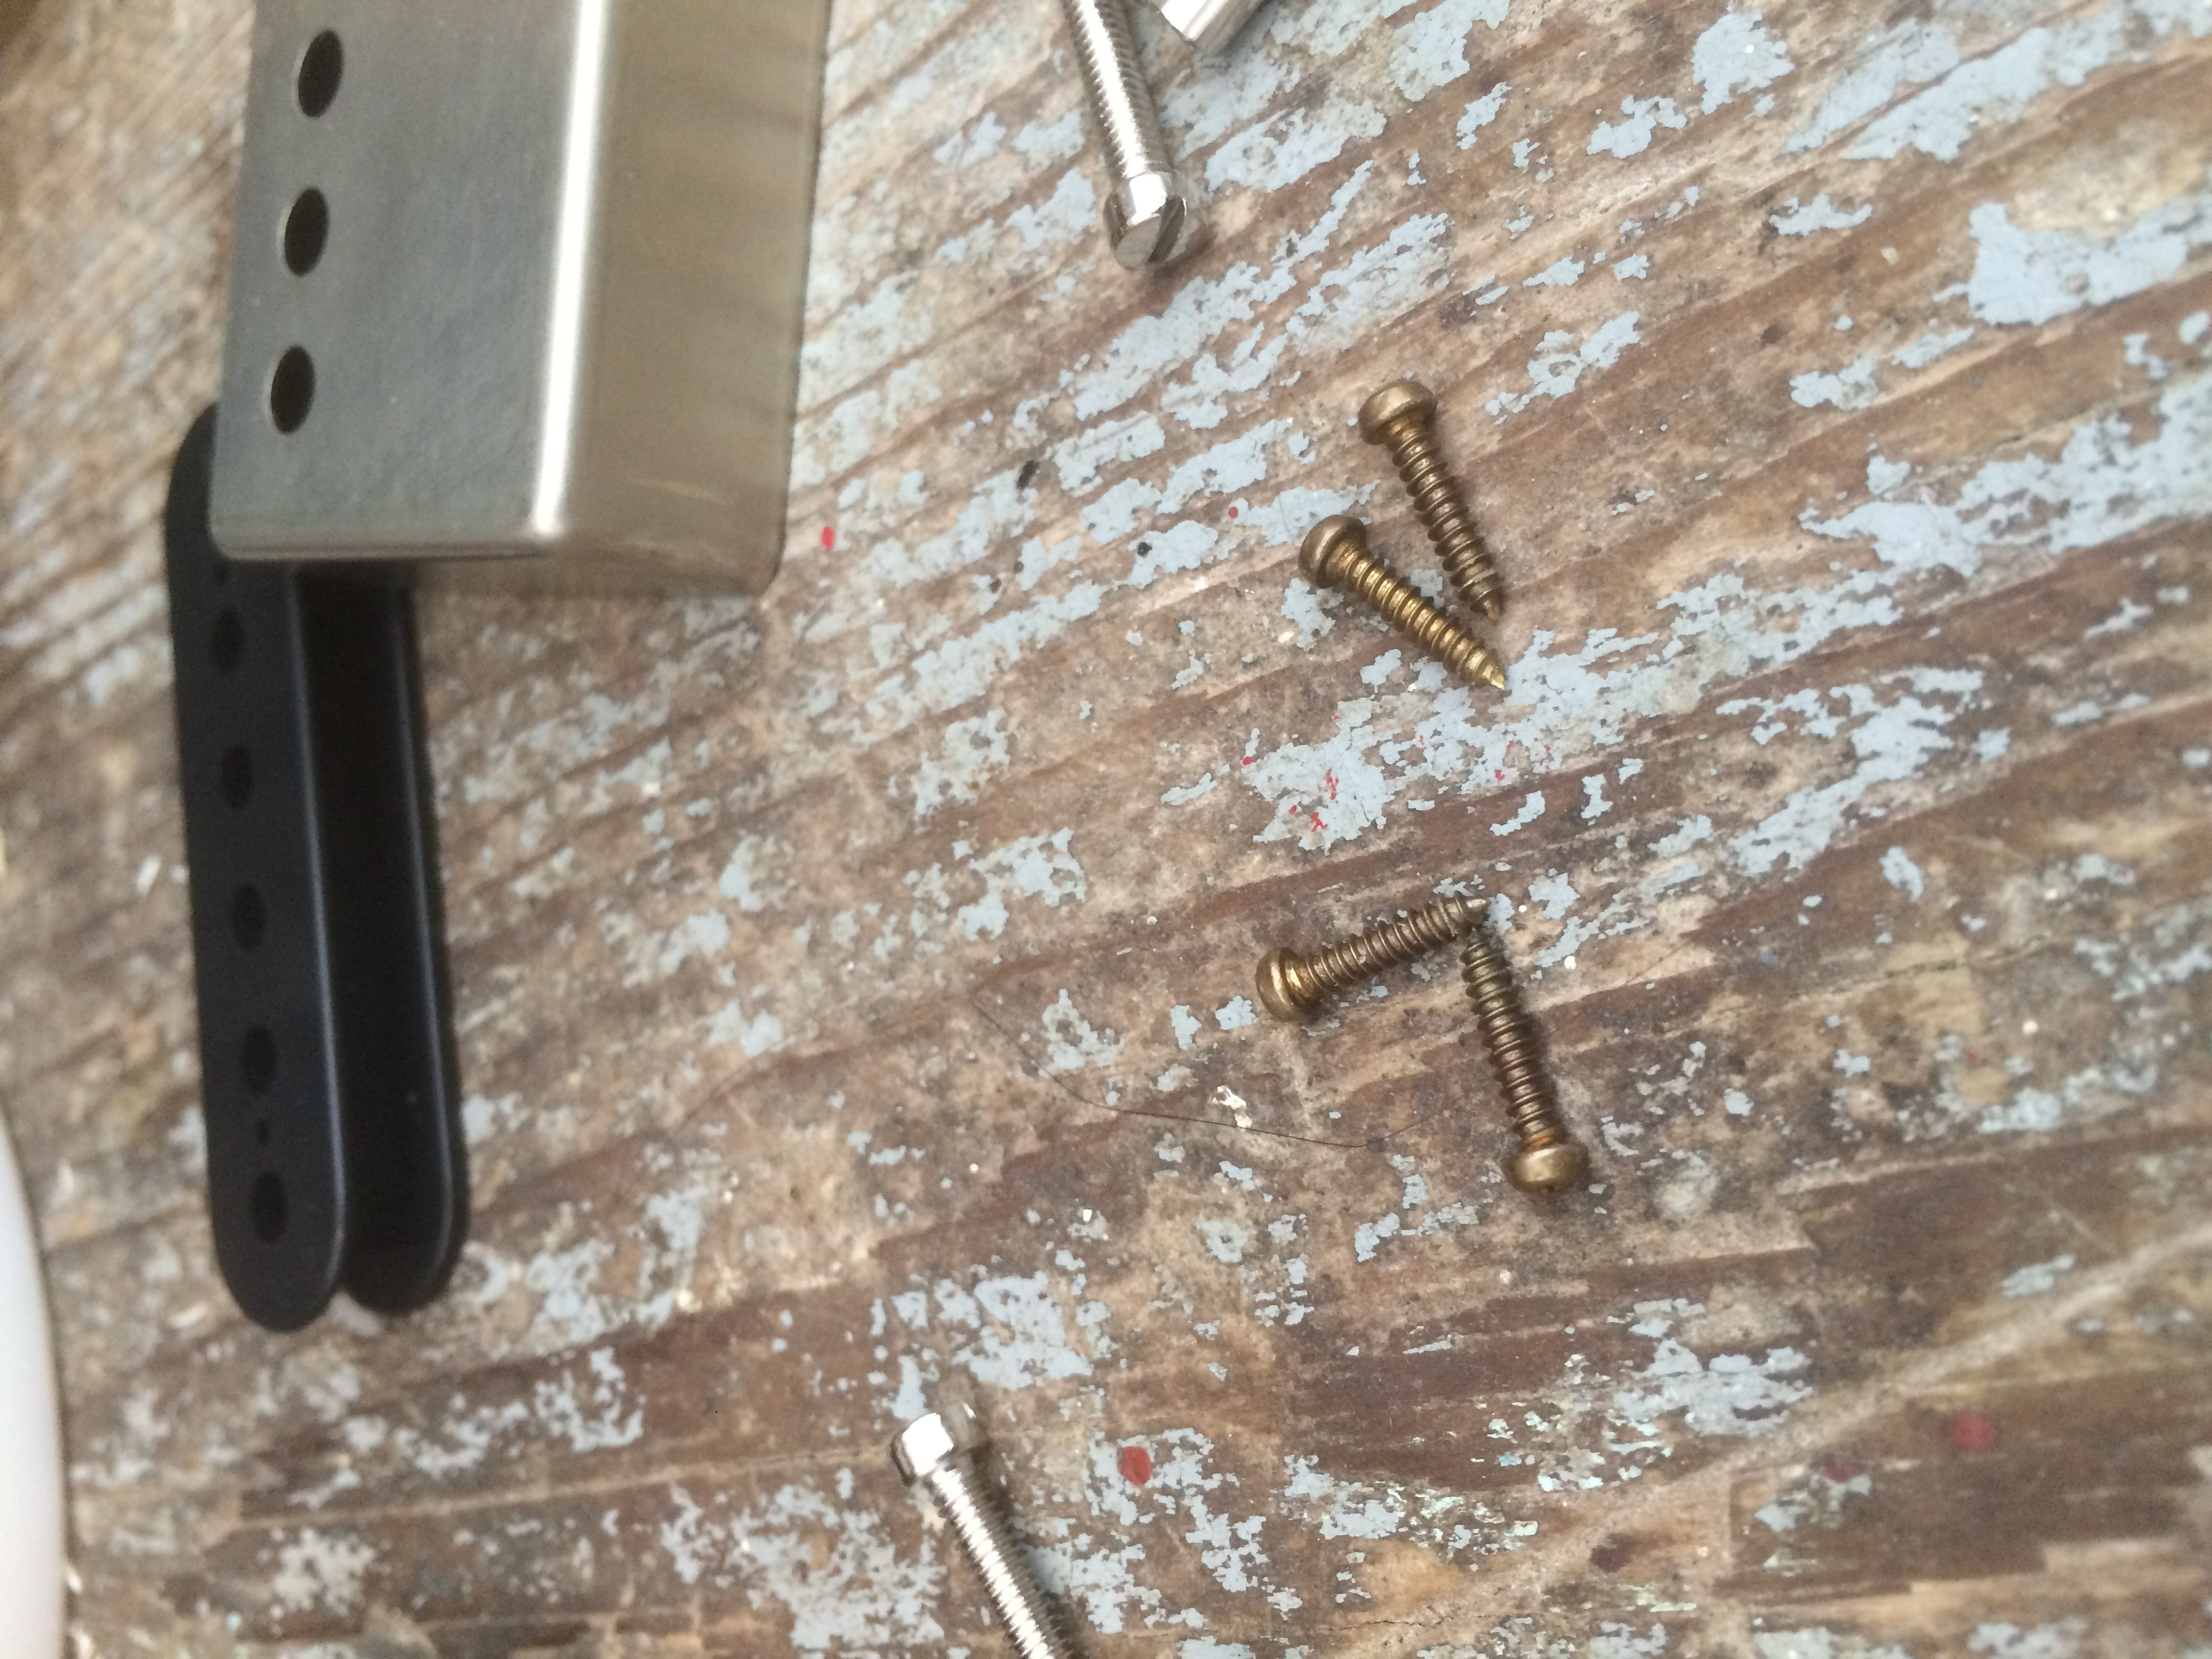 Brass screw attach the bobbins to the baseplate from the underside of the baseplate. The screws are in the magnetic field of the pickup, so the metallurgy can affect the tone.